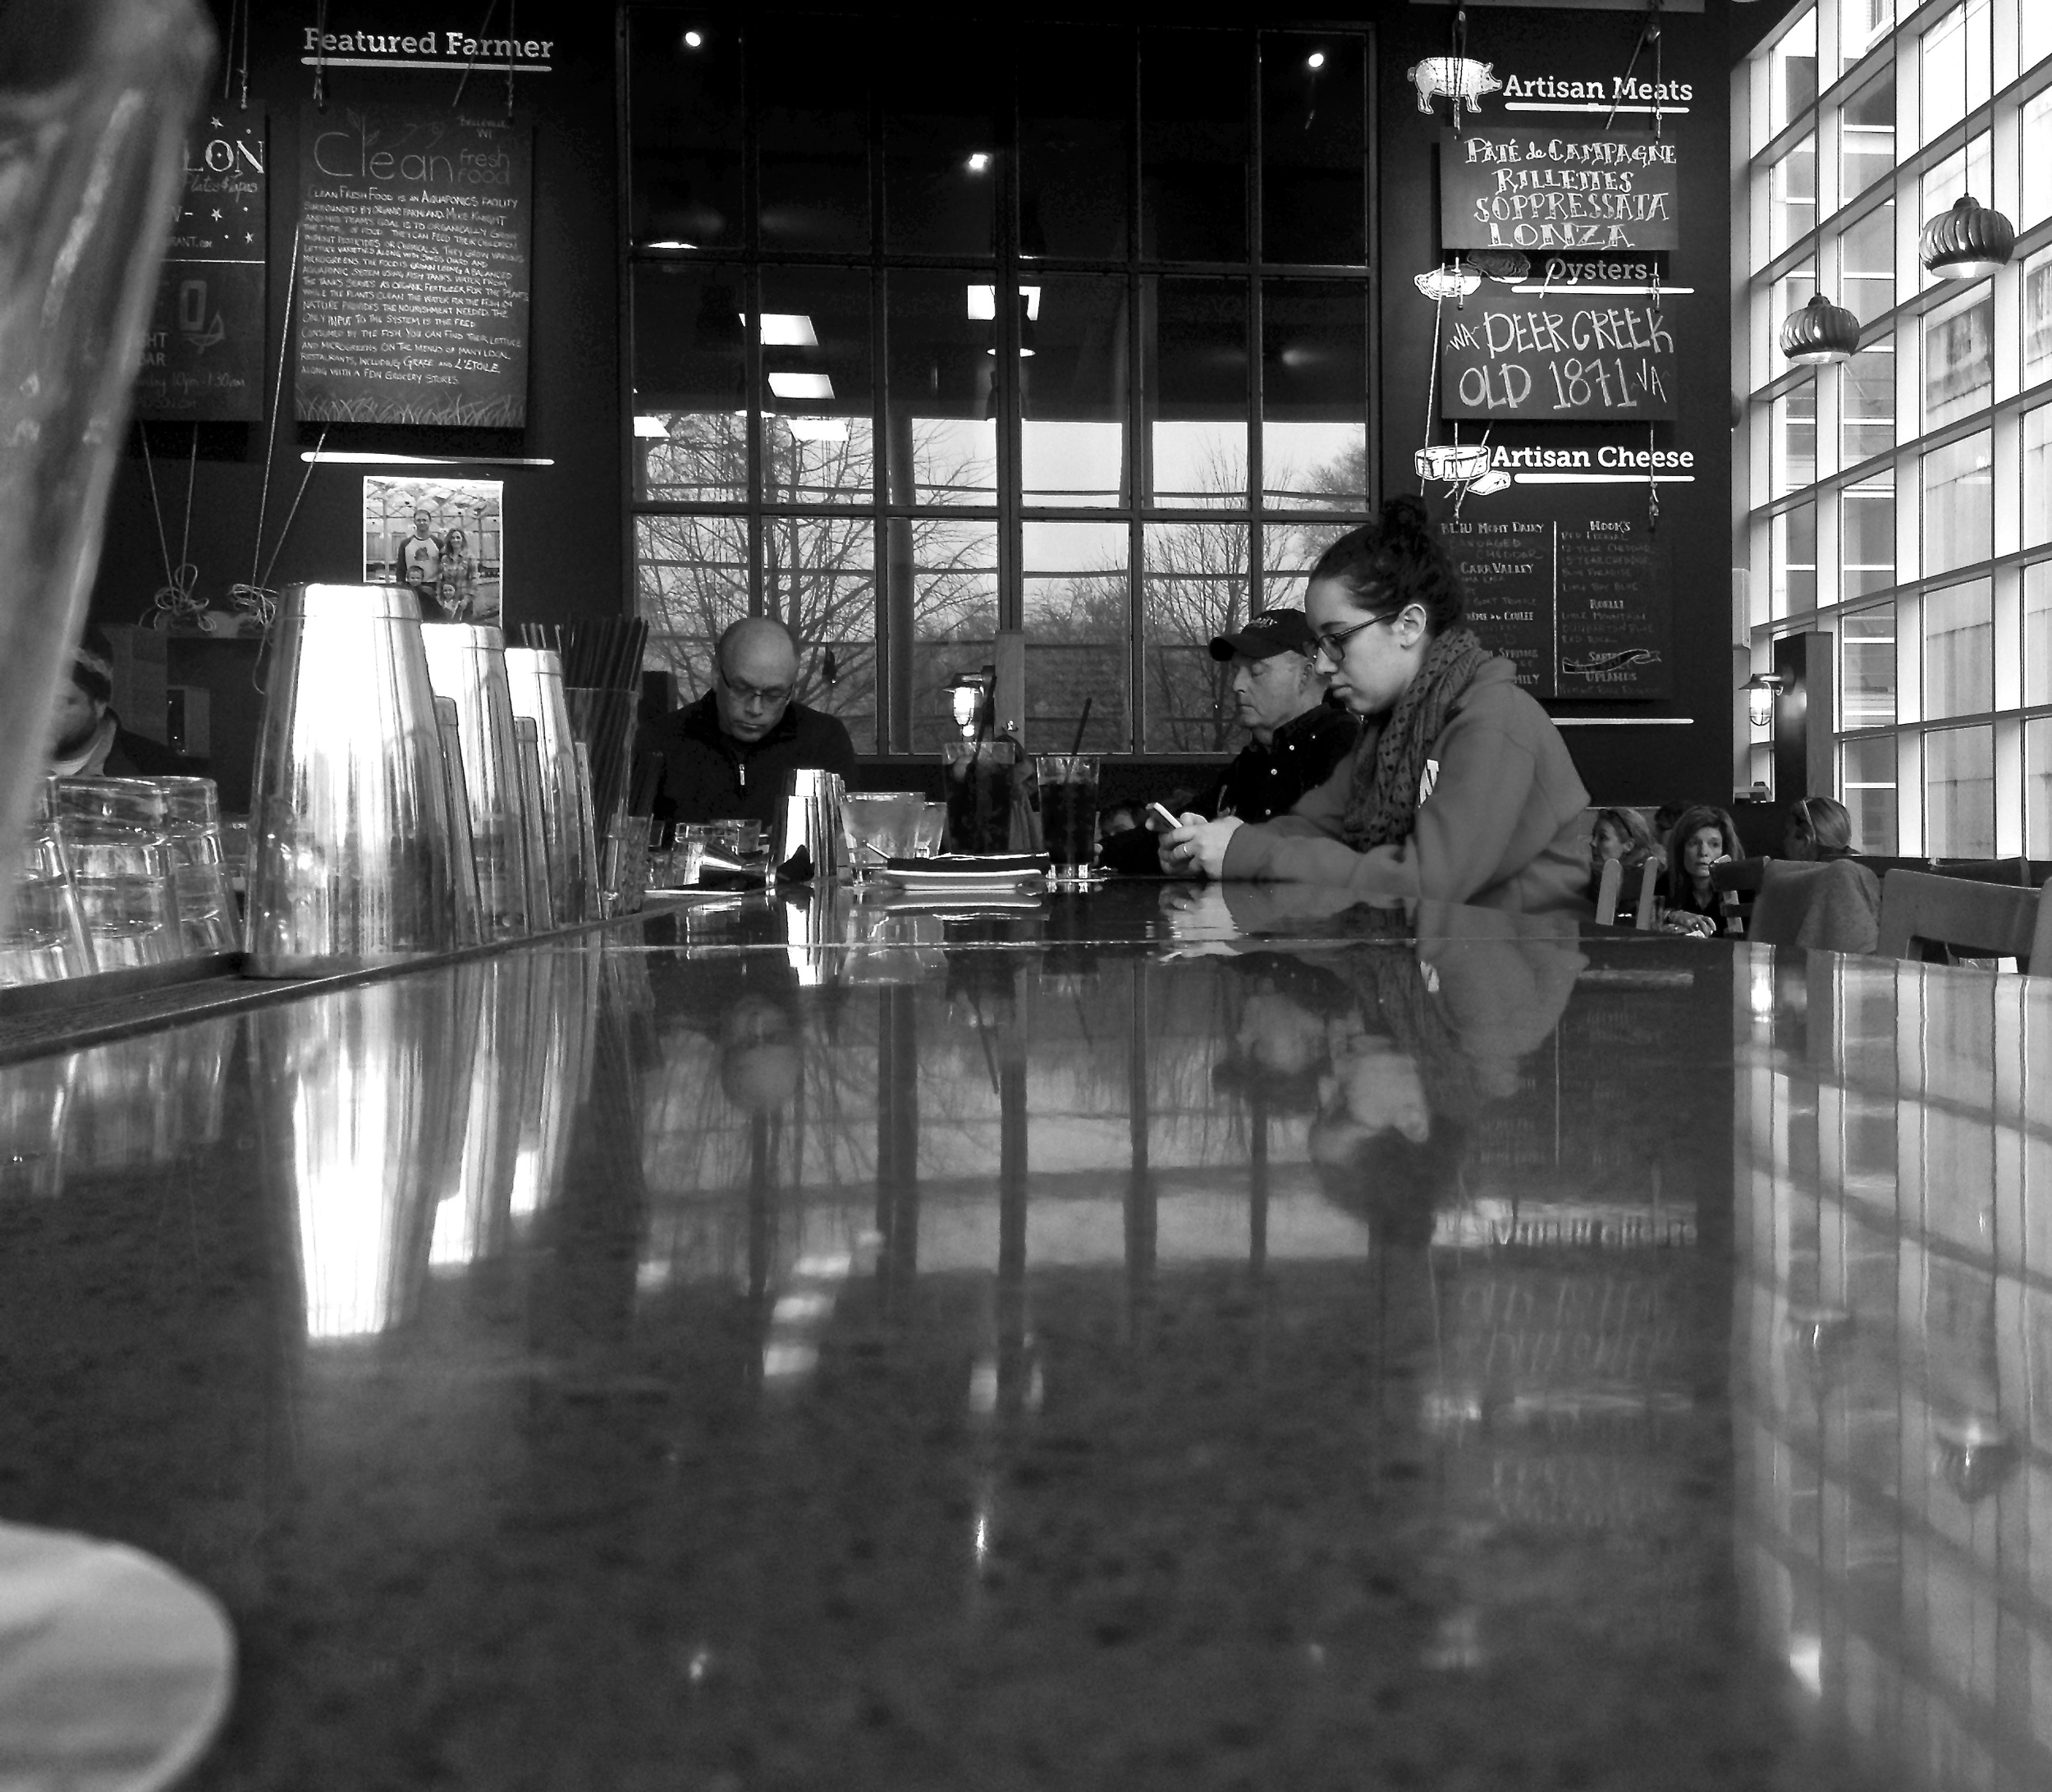 Lunch Counter. Capitol Square. Madison, Wisconsin. December 2015. © William D. Walker